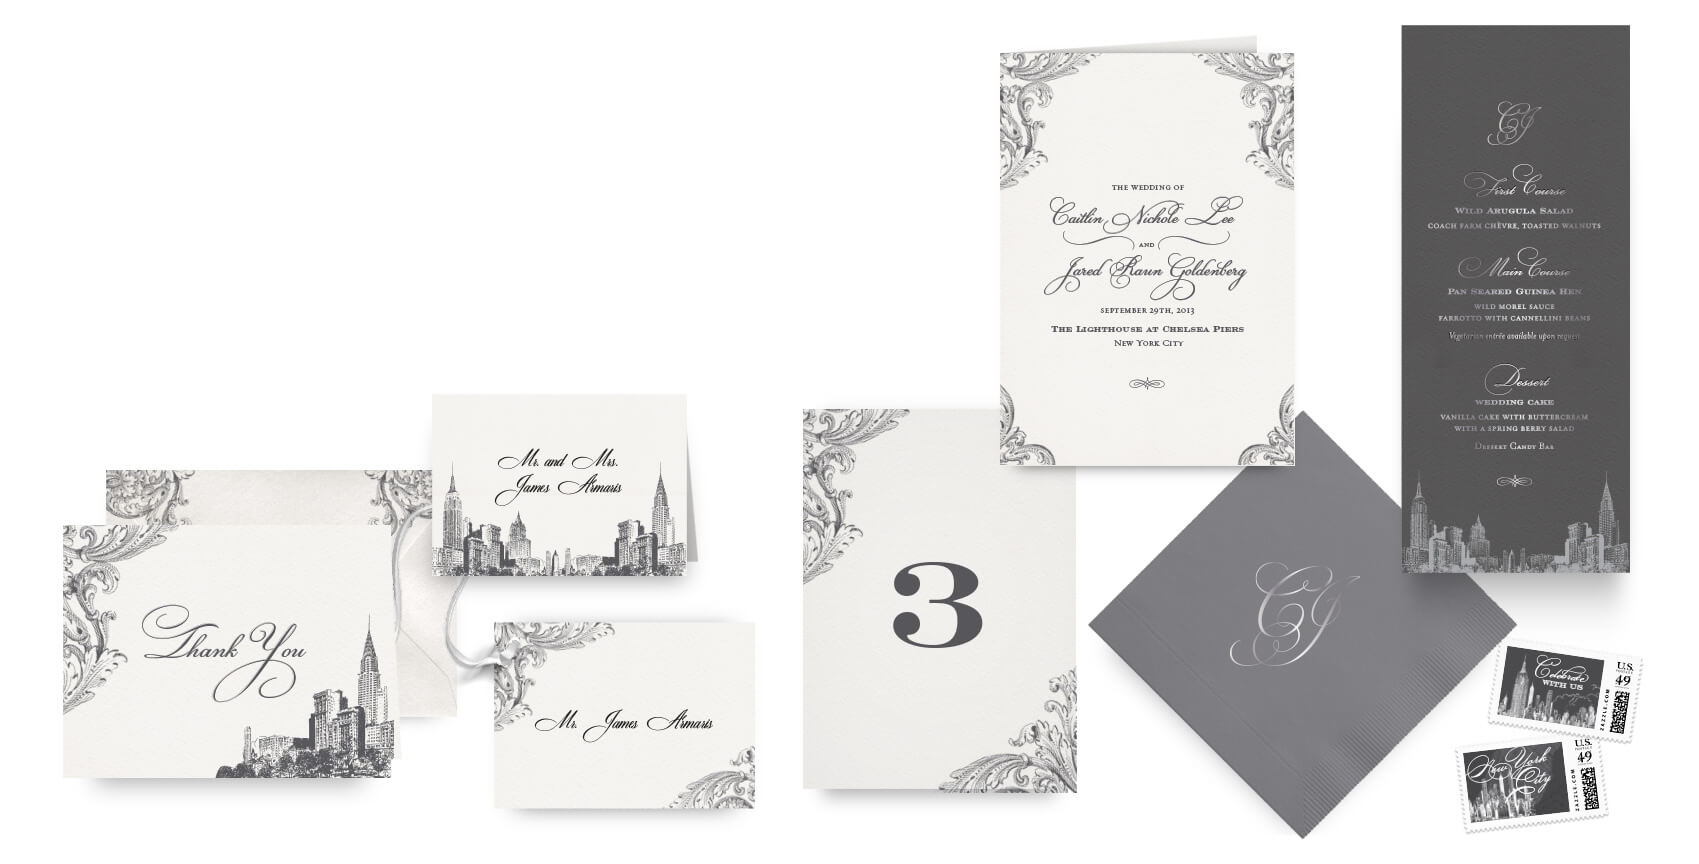 New York menus, programs and wedding accessories